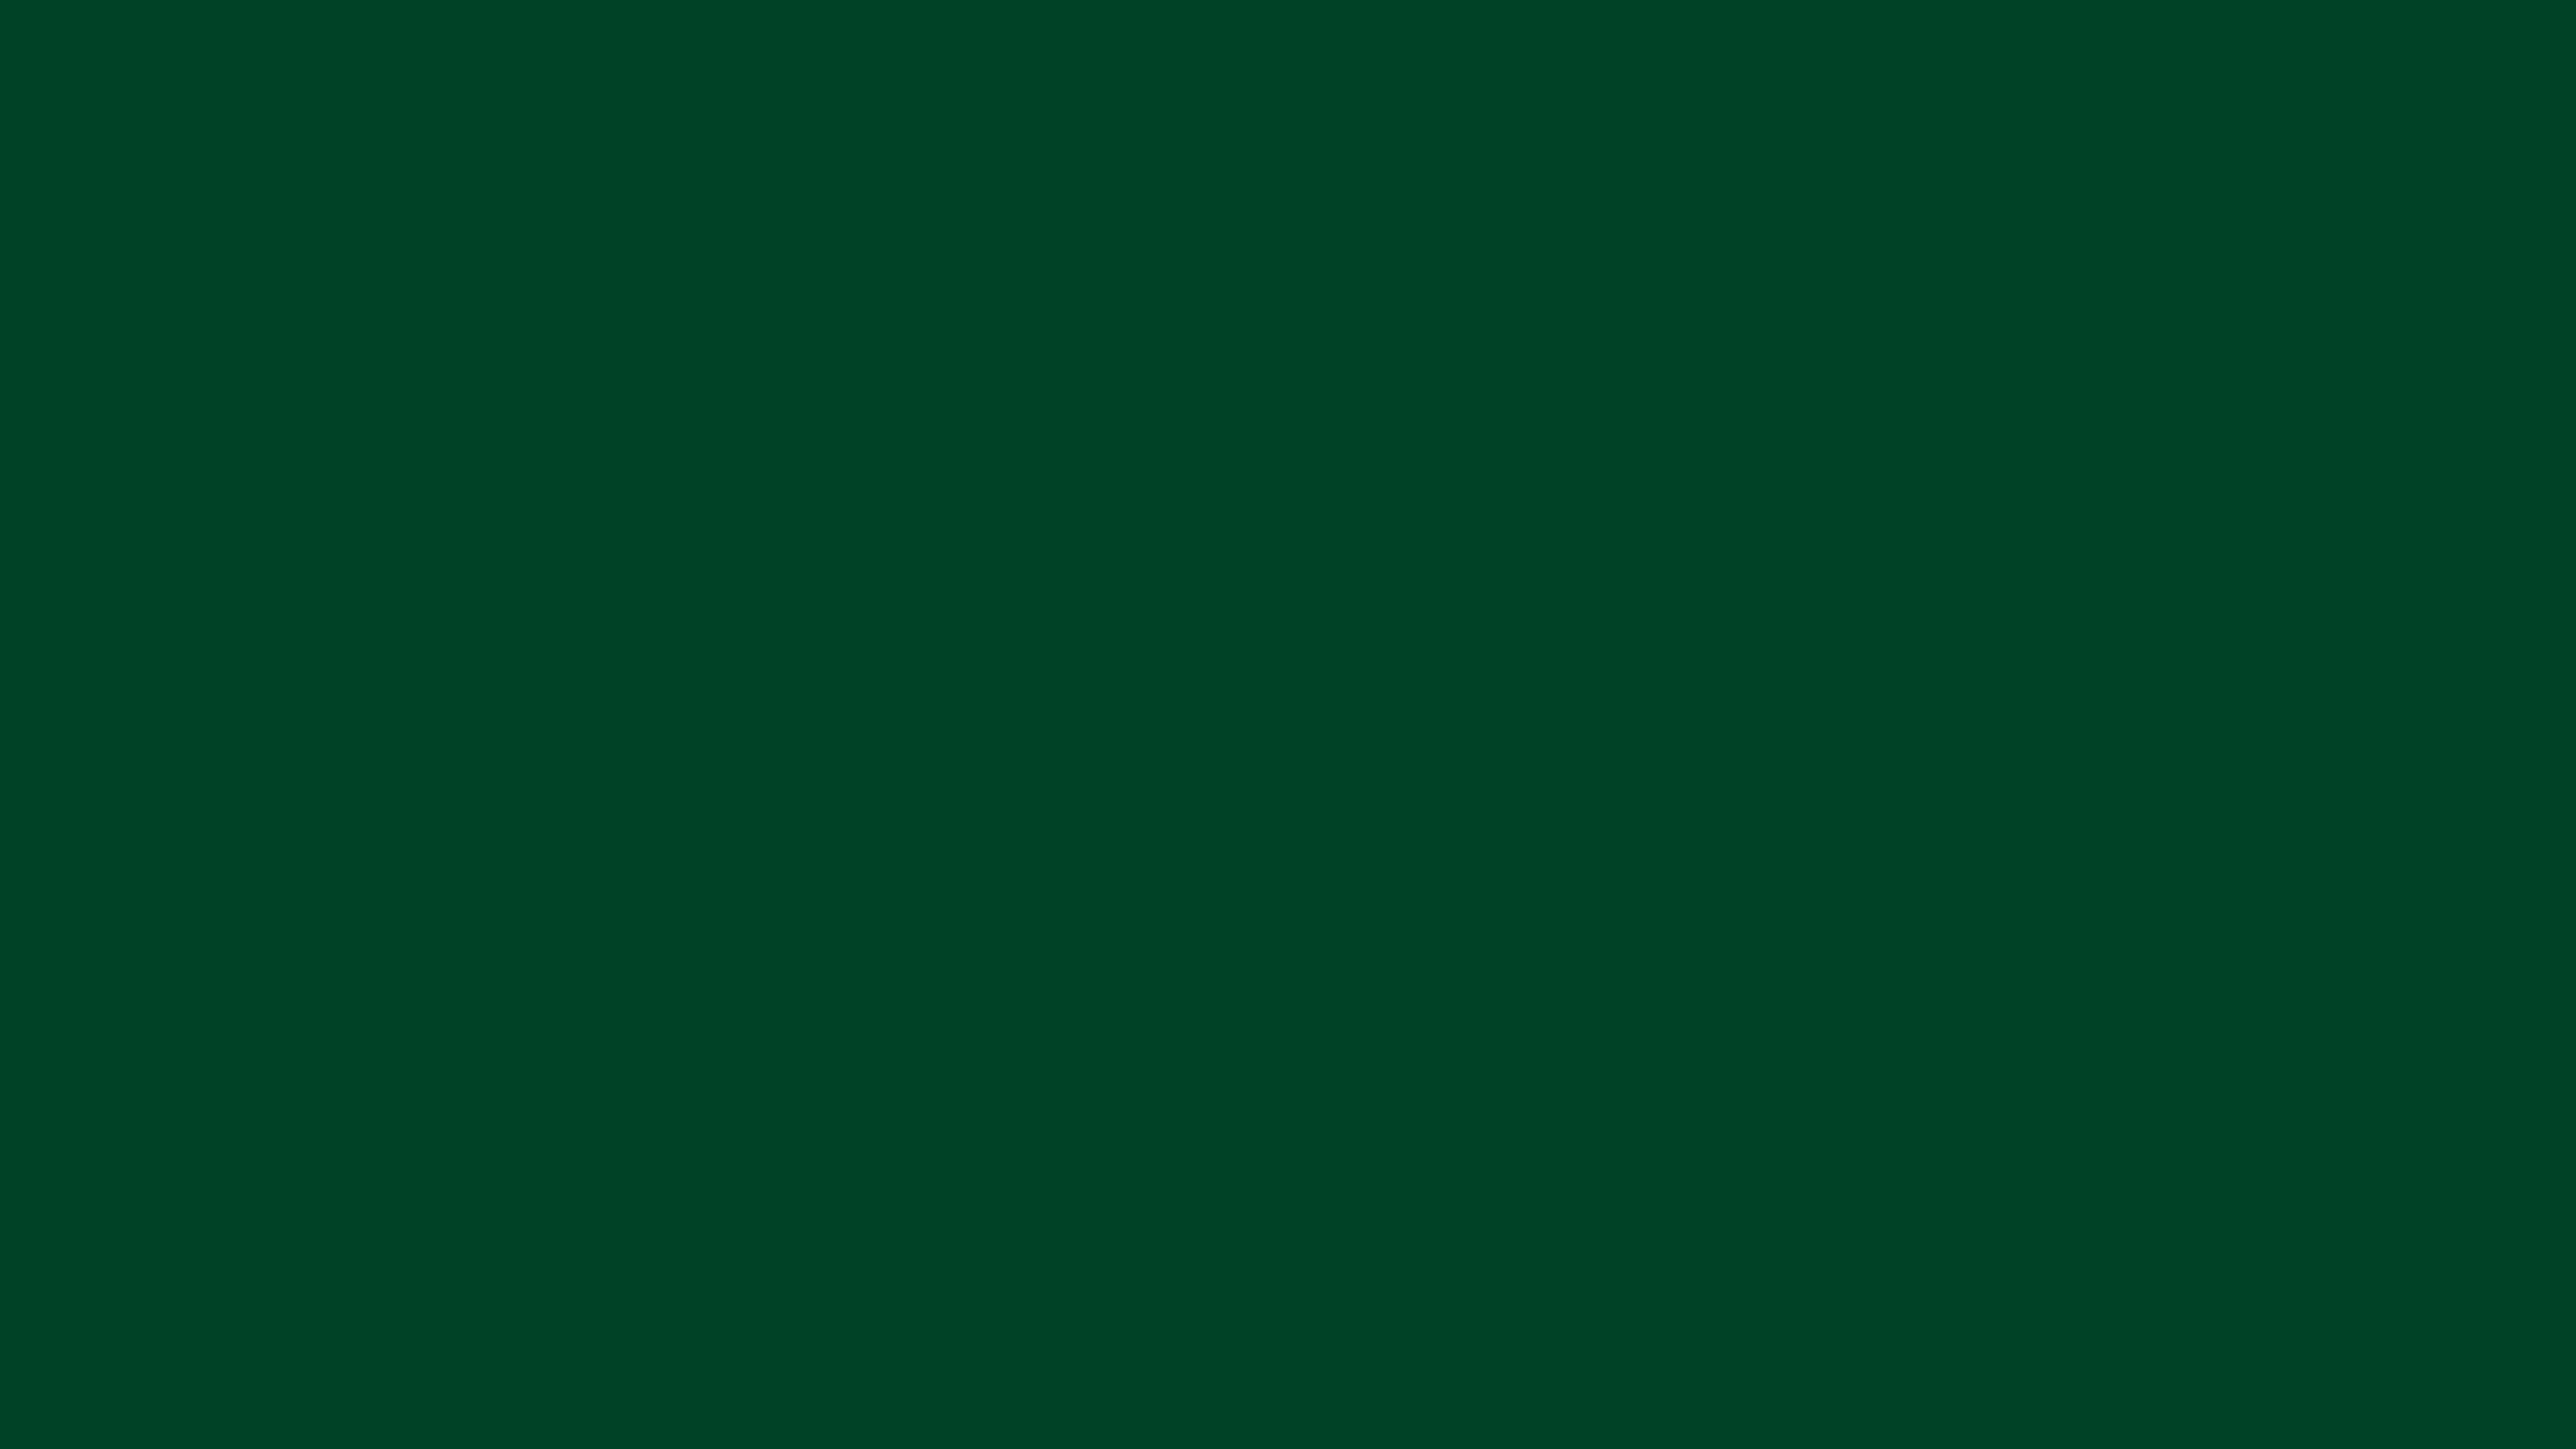 5120x2880 British Racing Green Solid Color Background